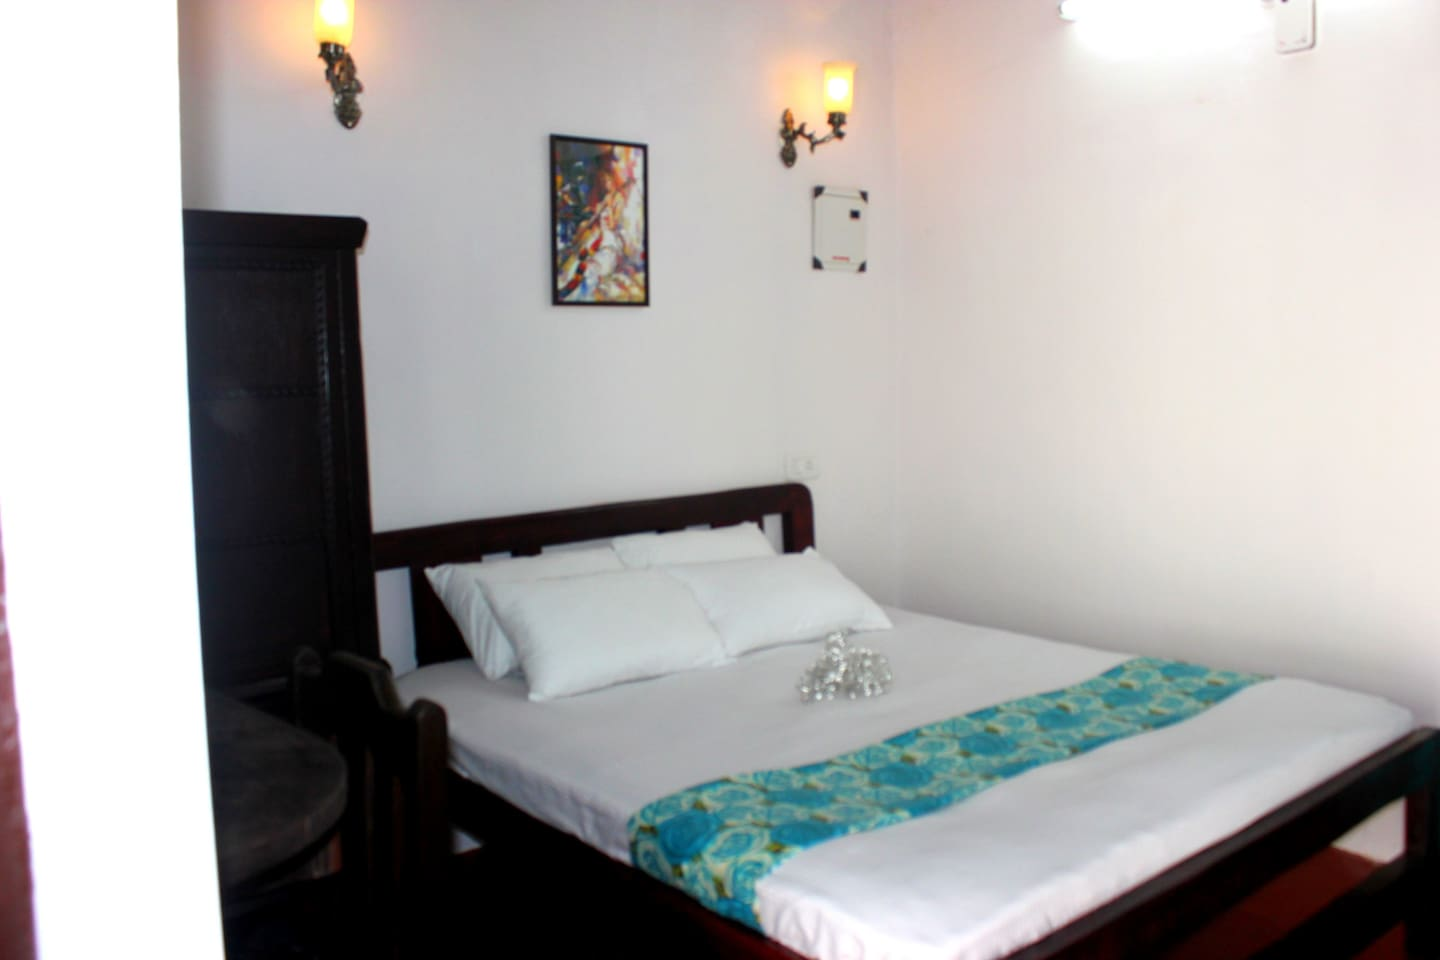 Top 20 Bed and Breakfasts Panjim: Inns and B&Bs - Airbnb Panjim